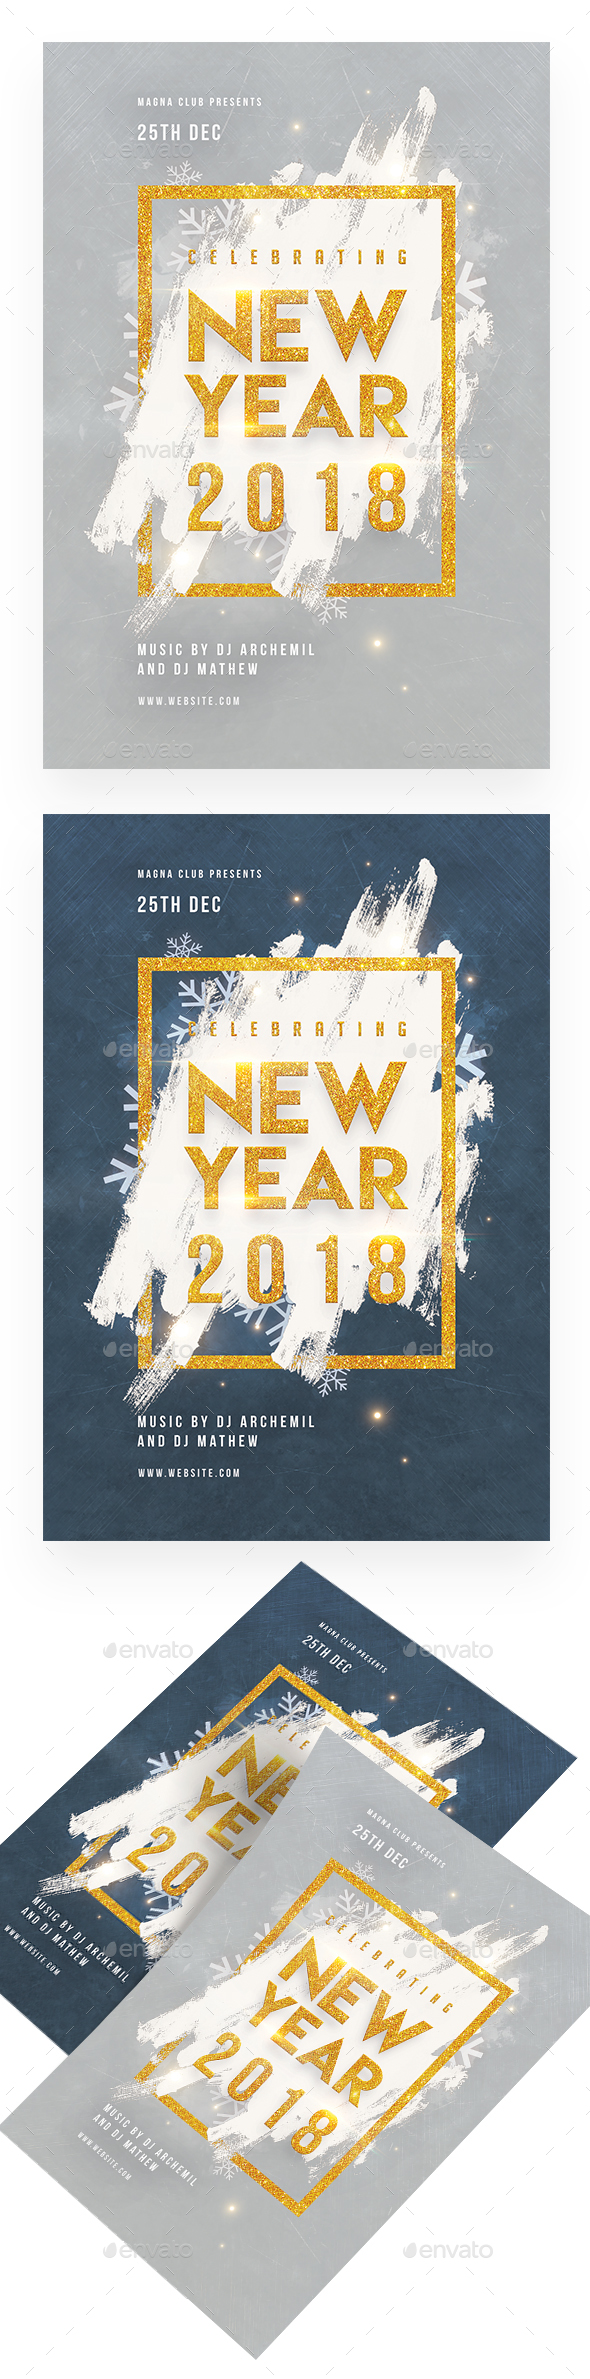 New Year Celebration Flyer - Clubs & Parties Events